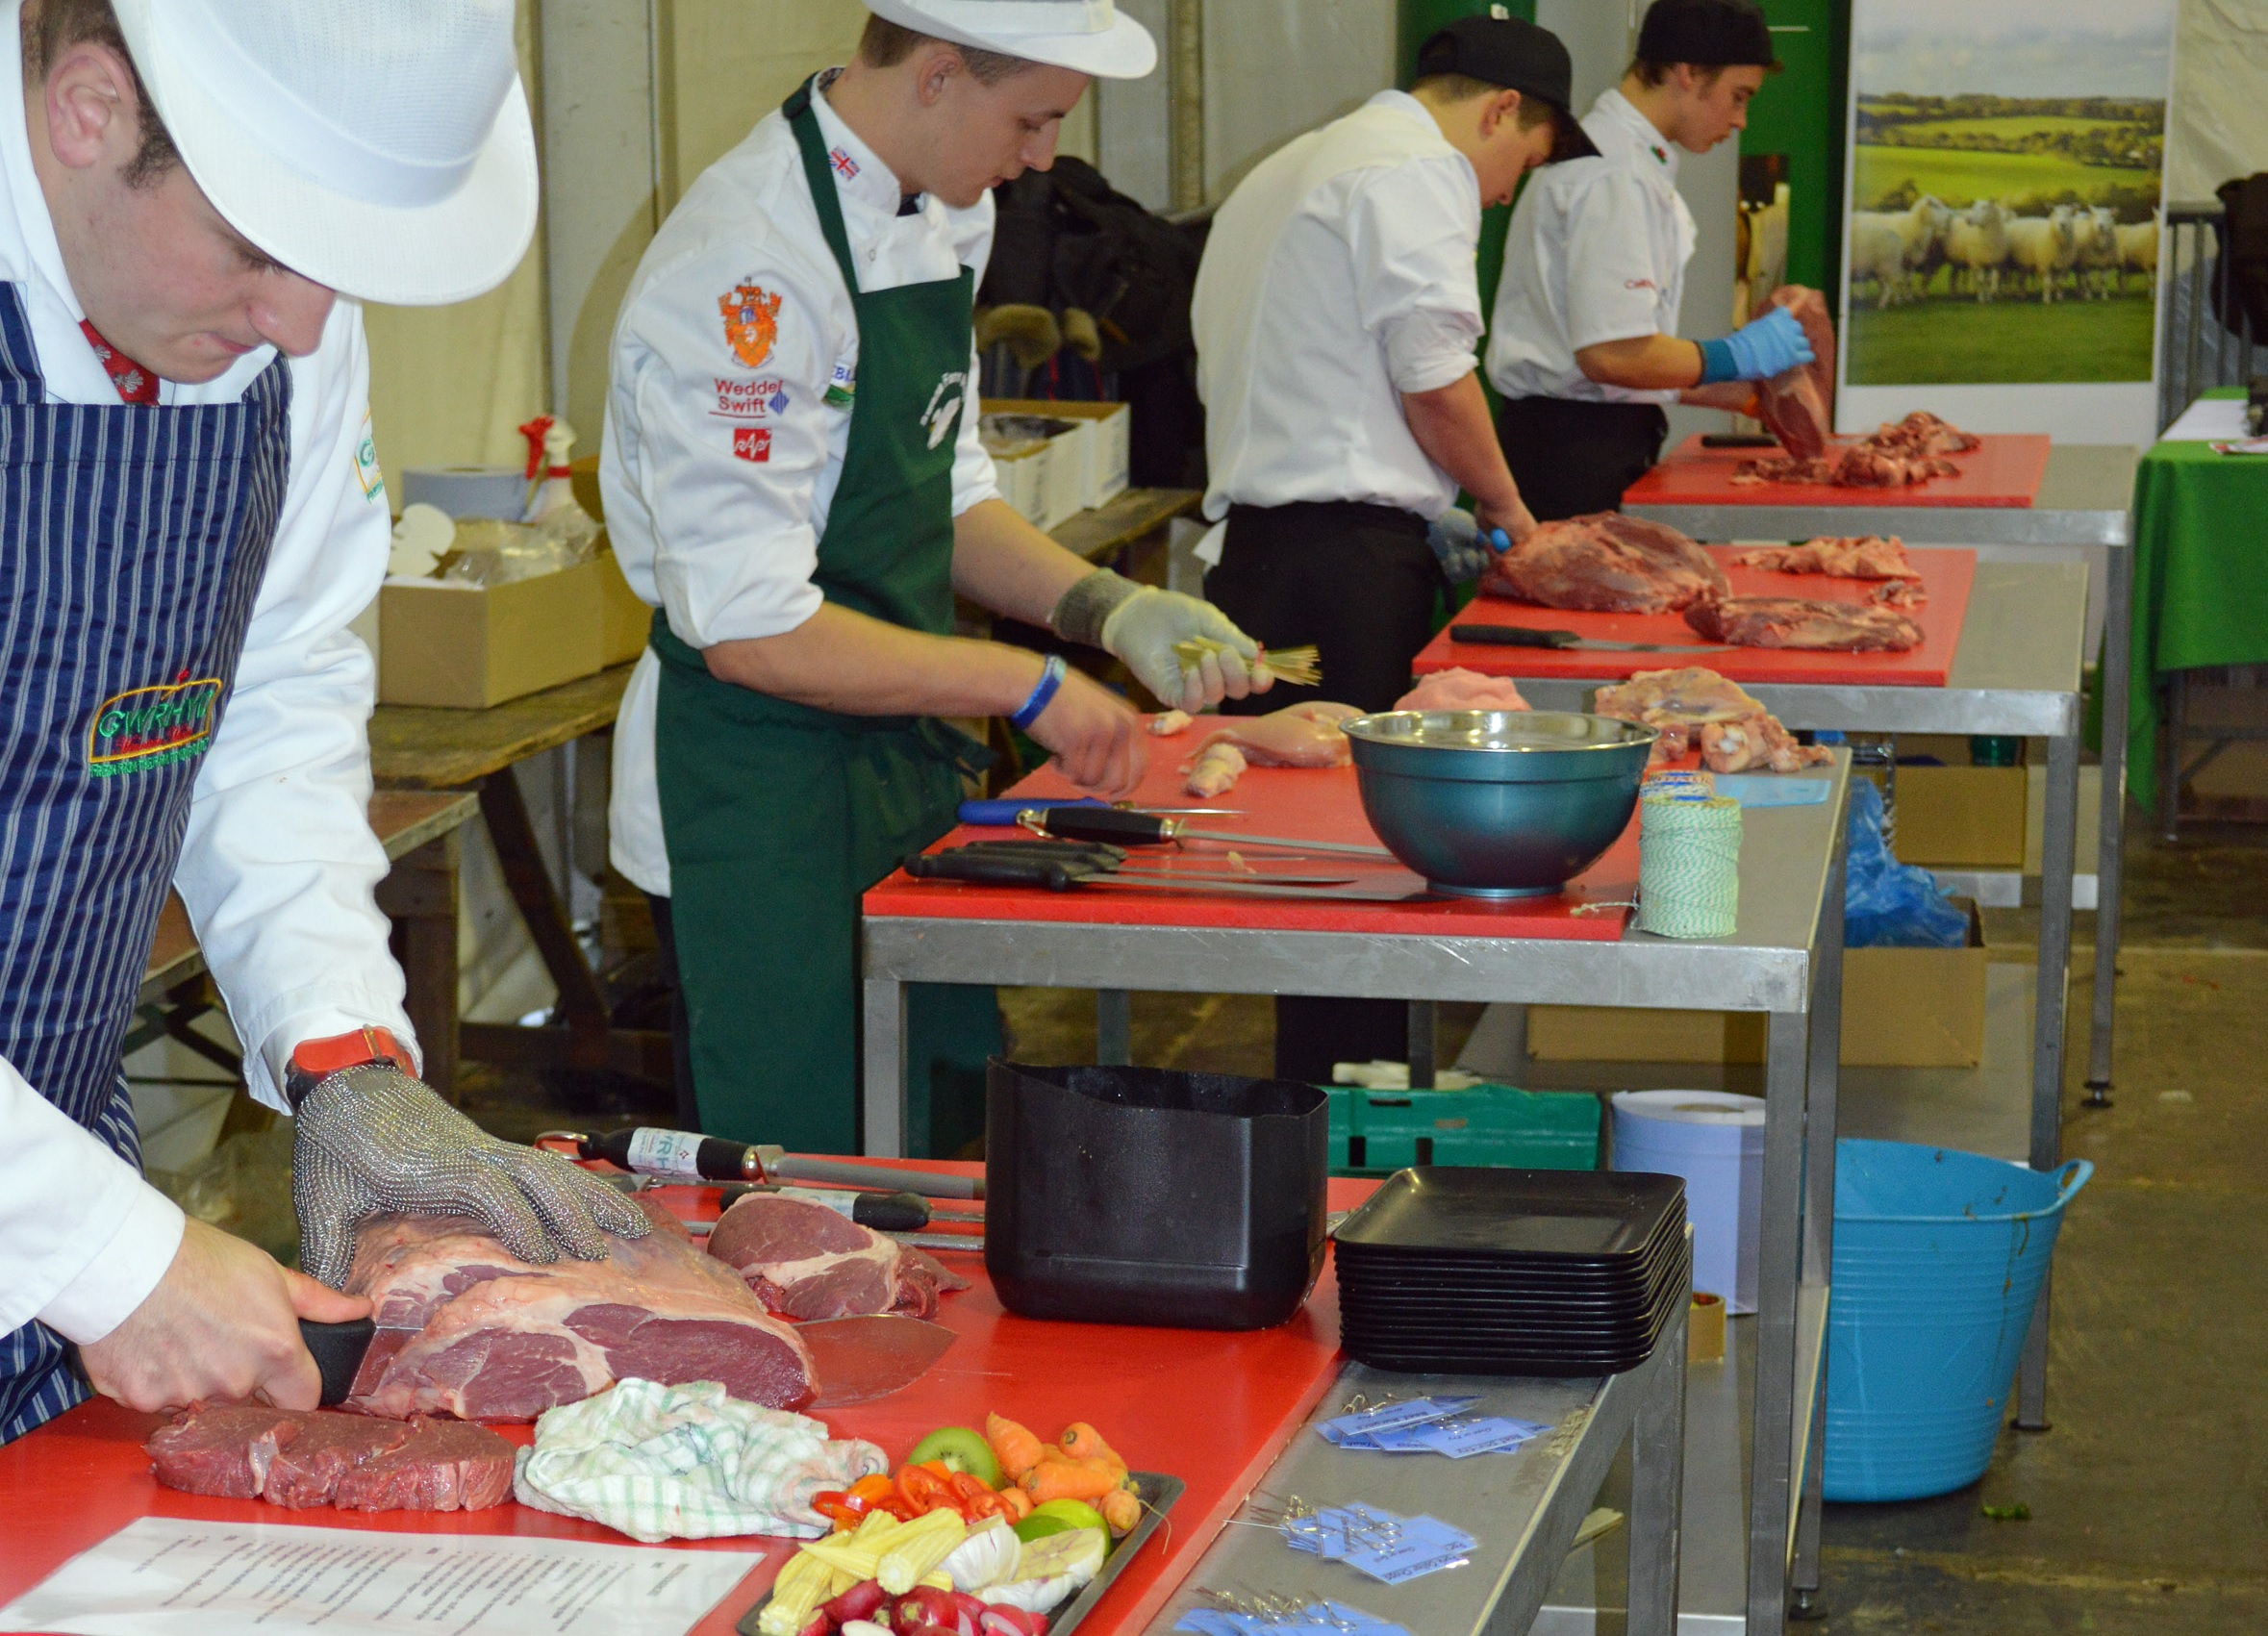 butcher box competitors